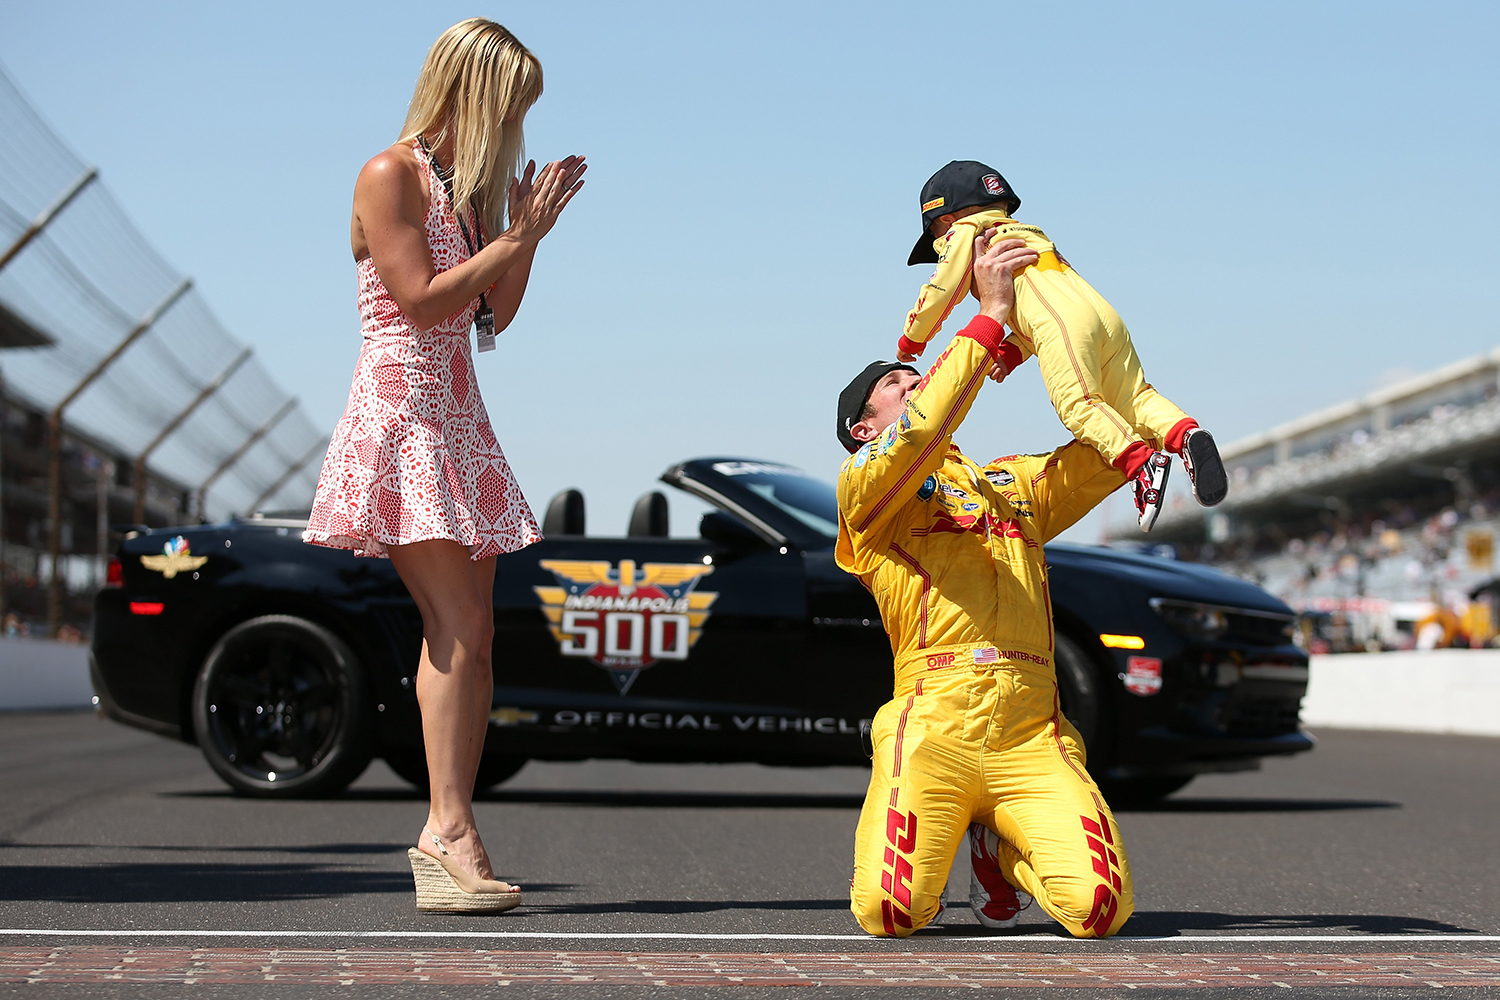 Winner Of Indy Car Race Today